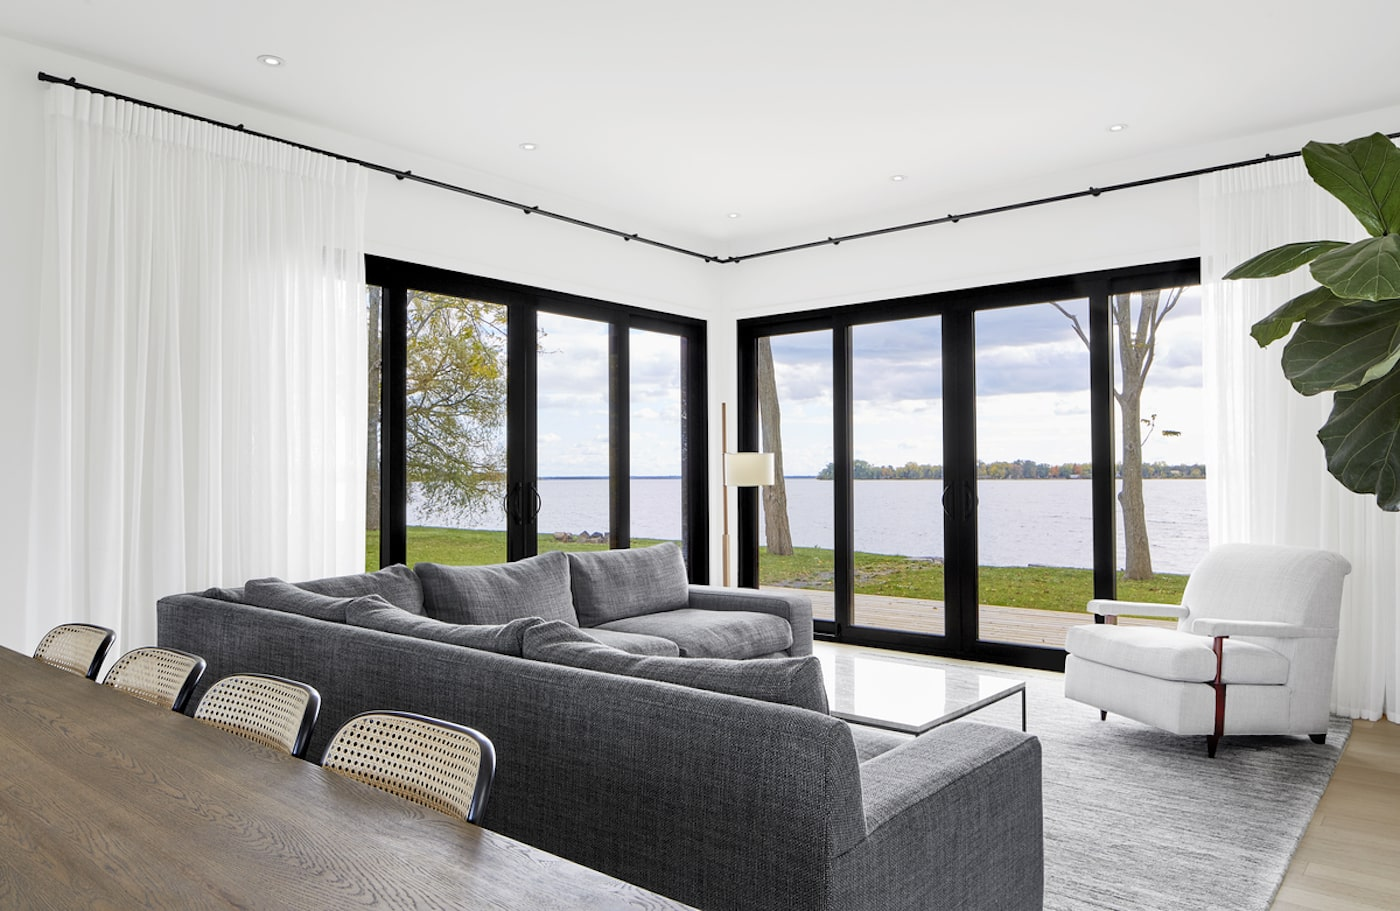 Loungeroom in sustainable house with water view